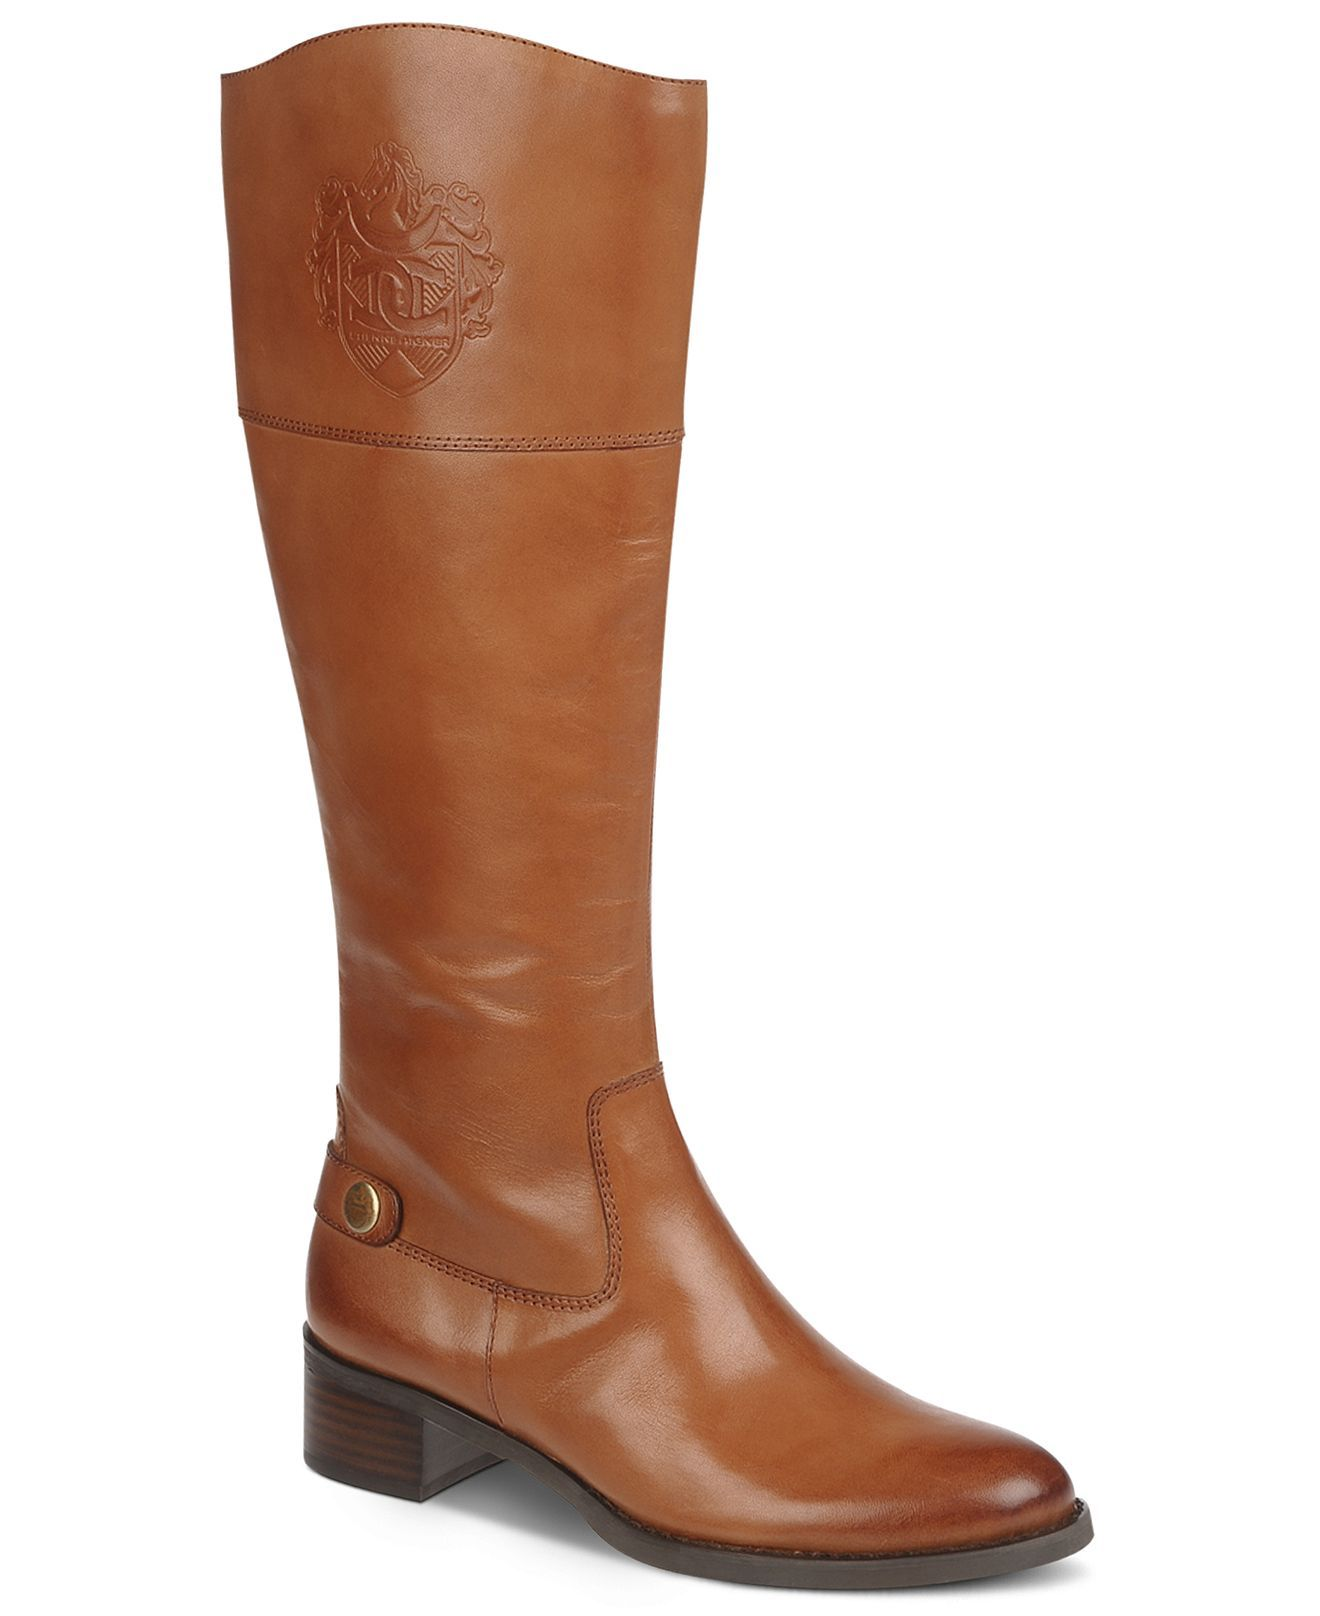 52e8a64c5e1 Etienne Aigner Shoes, Chip Tall Riding Boots - Shoes - Macy's   Pin ...